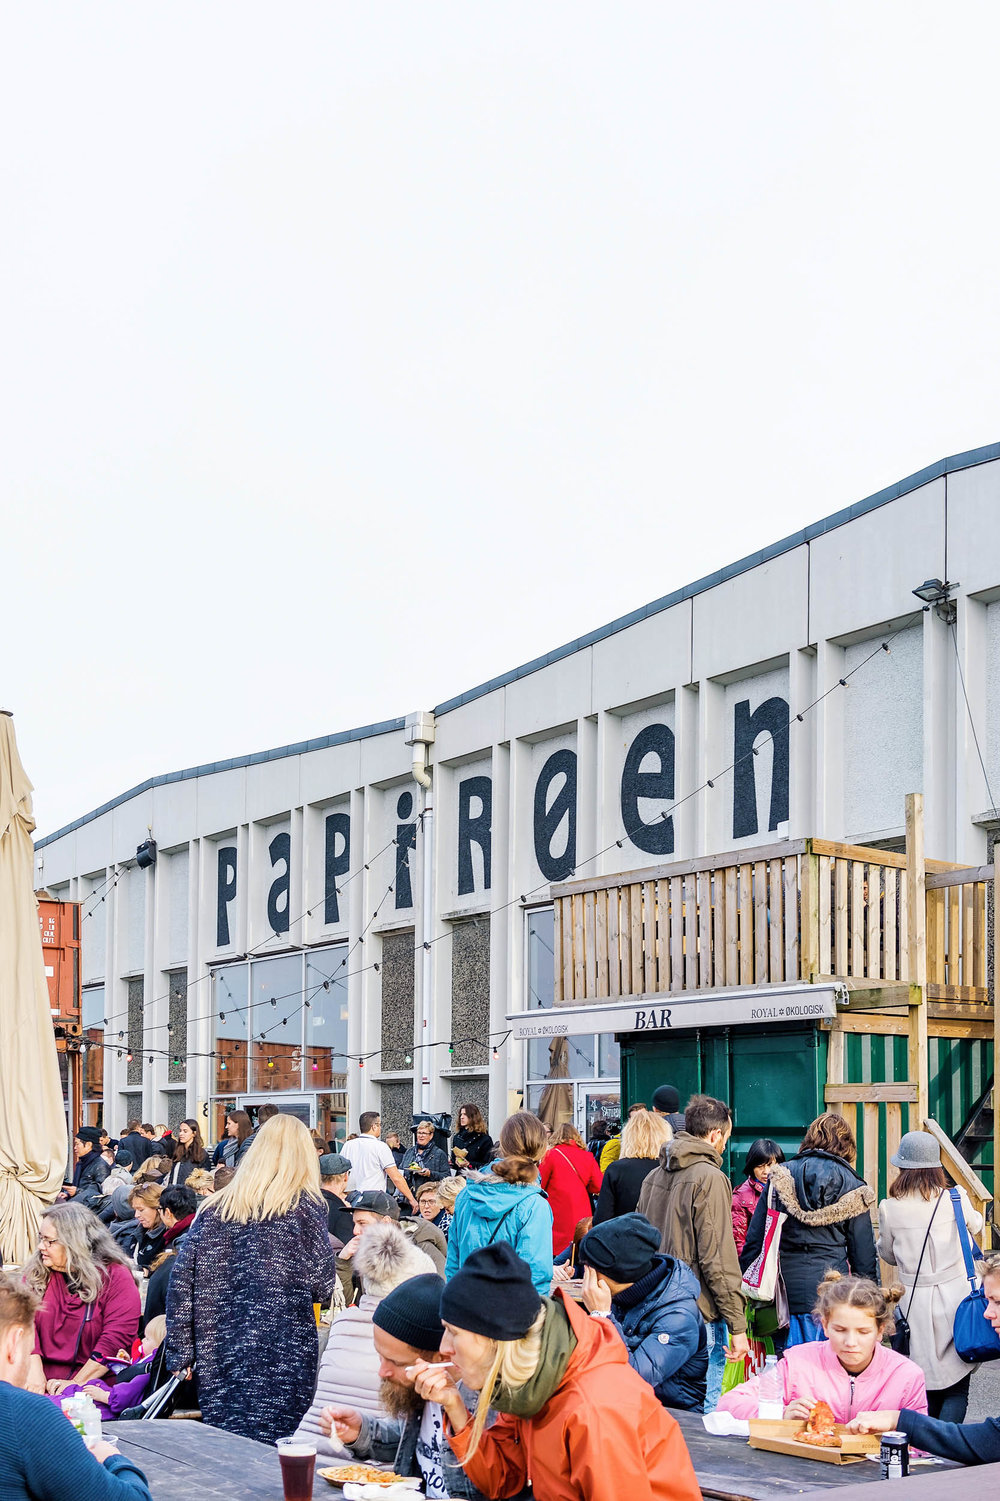 The Copenhagen street food market on Paper Island (Papirøen). A great place to grab lunch or dinner!